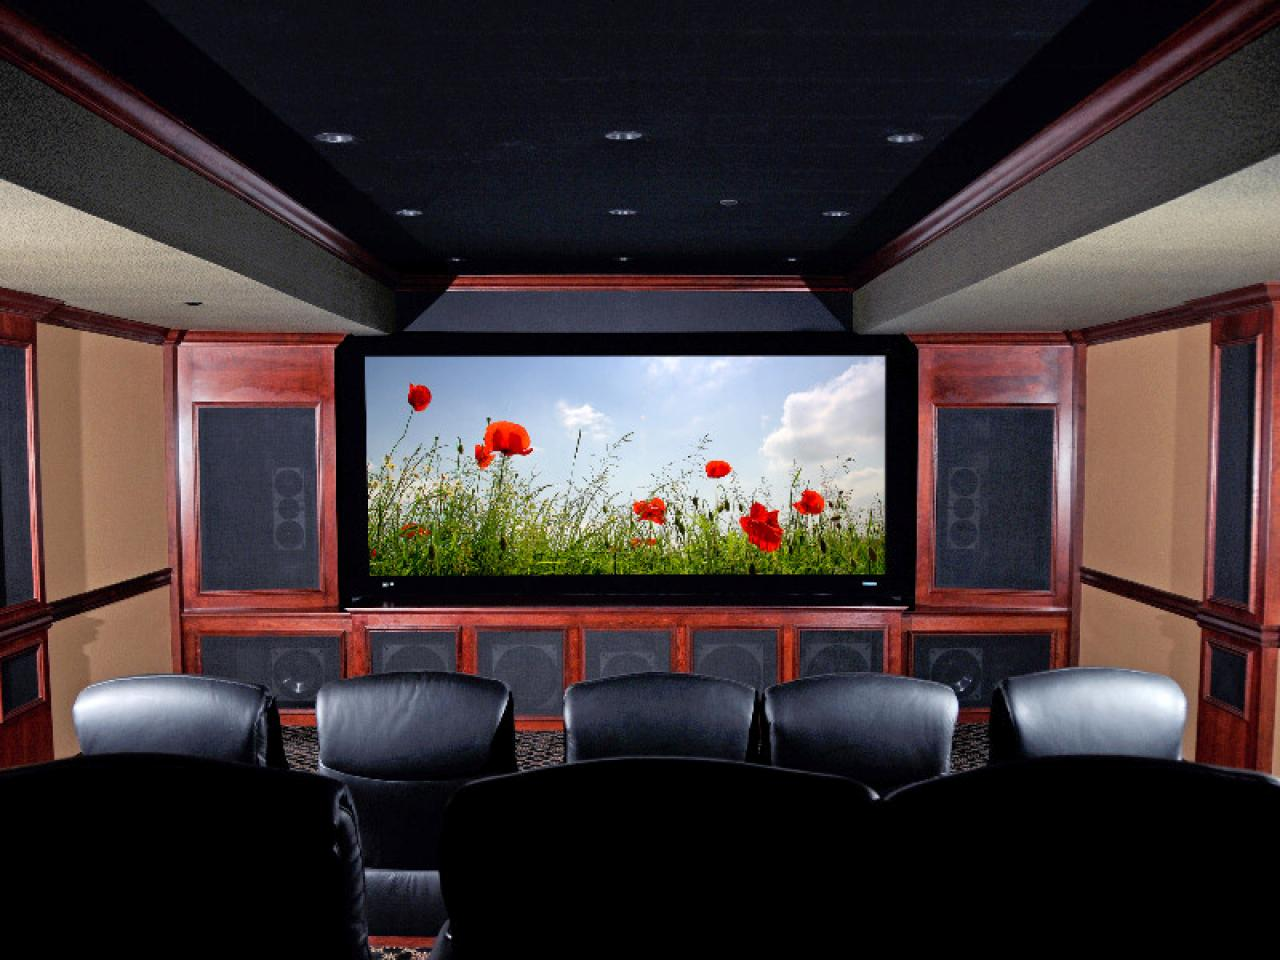 Building a home theater pictures options tips ideas hgtv Home theater design ideas on a budget